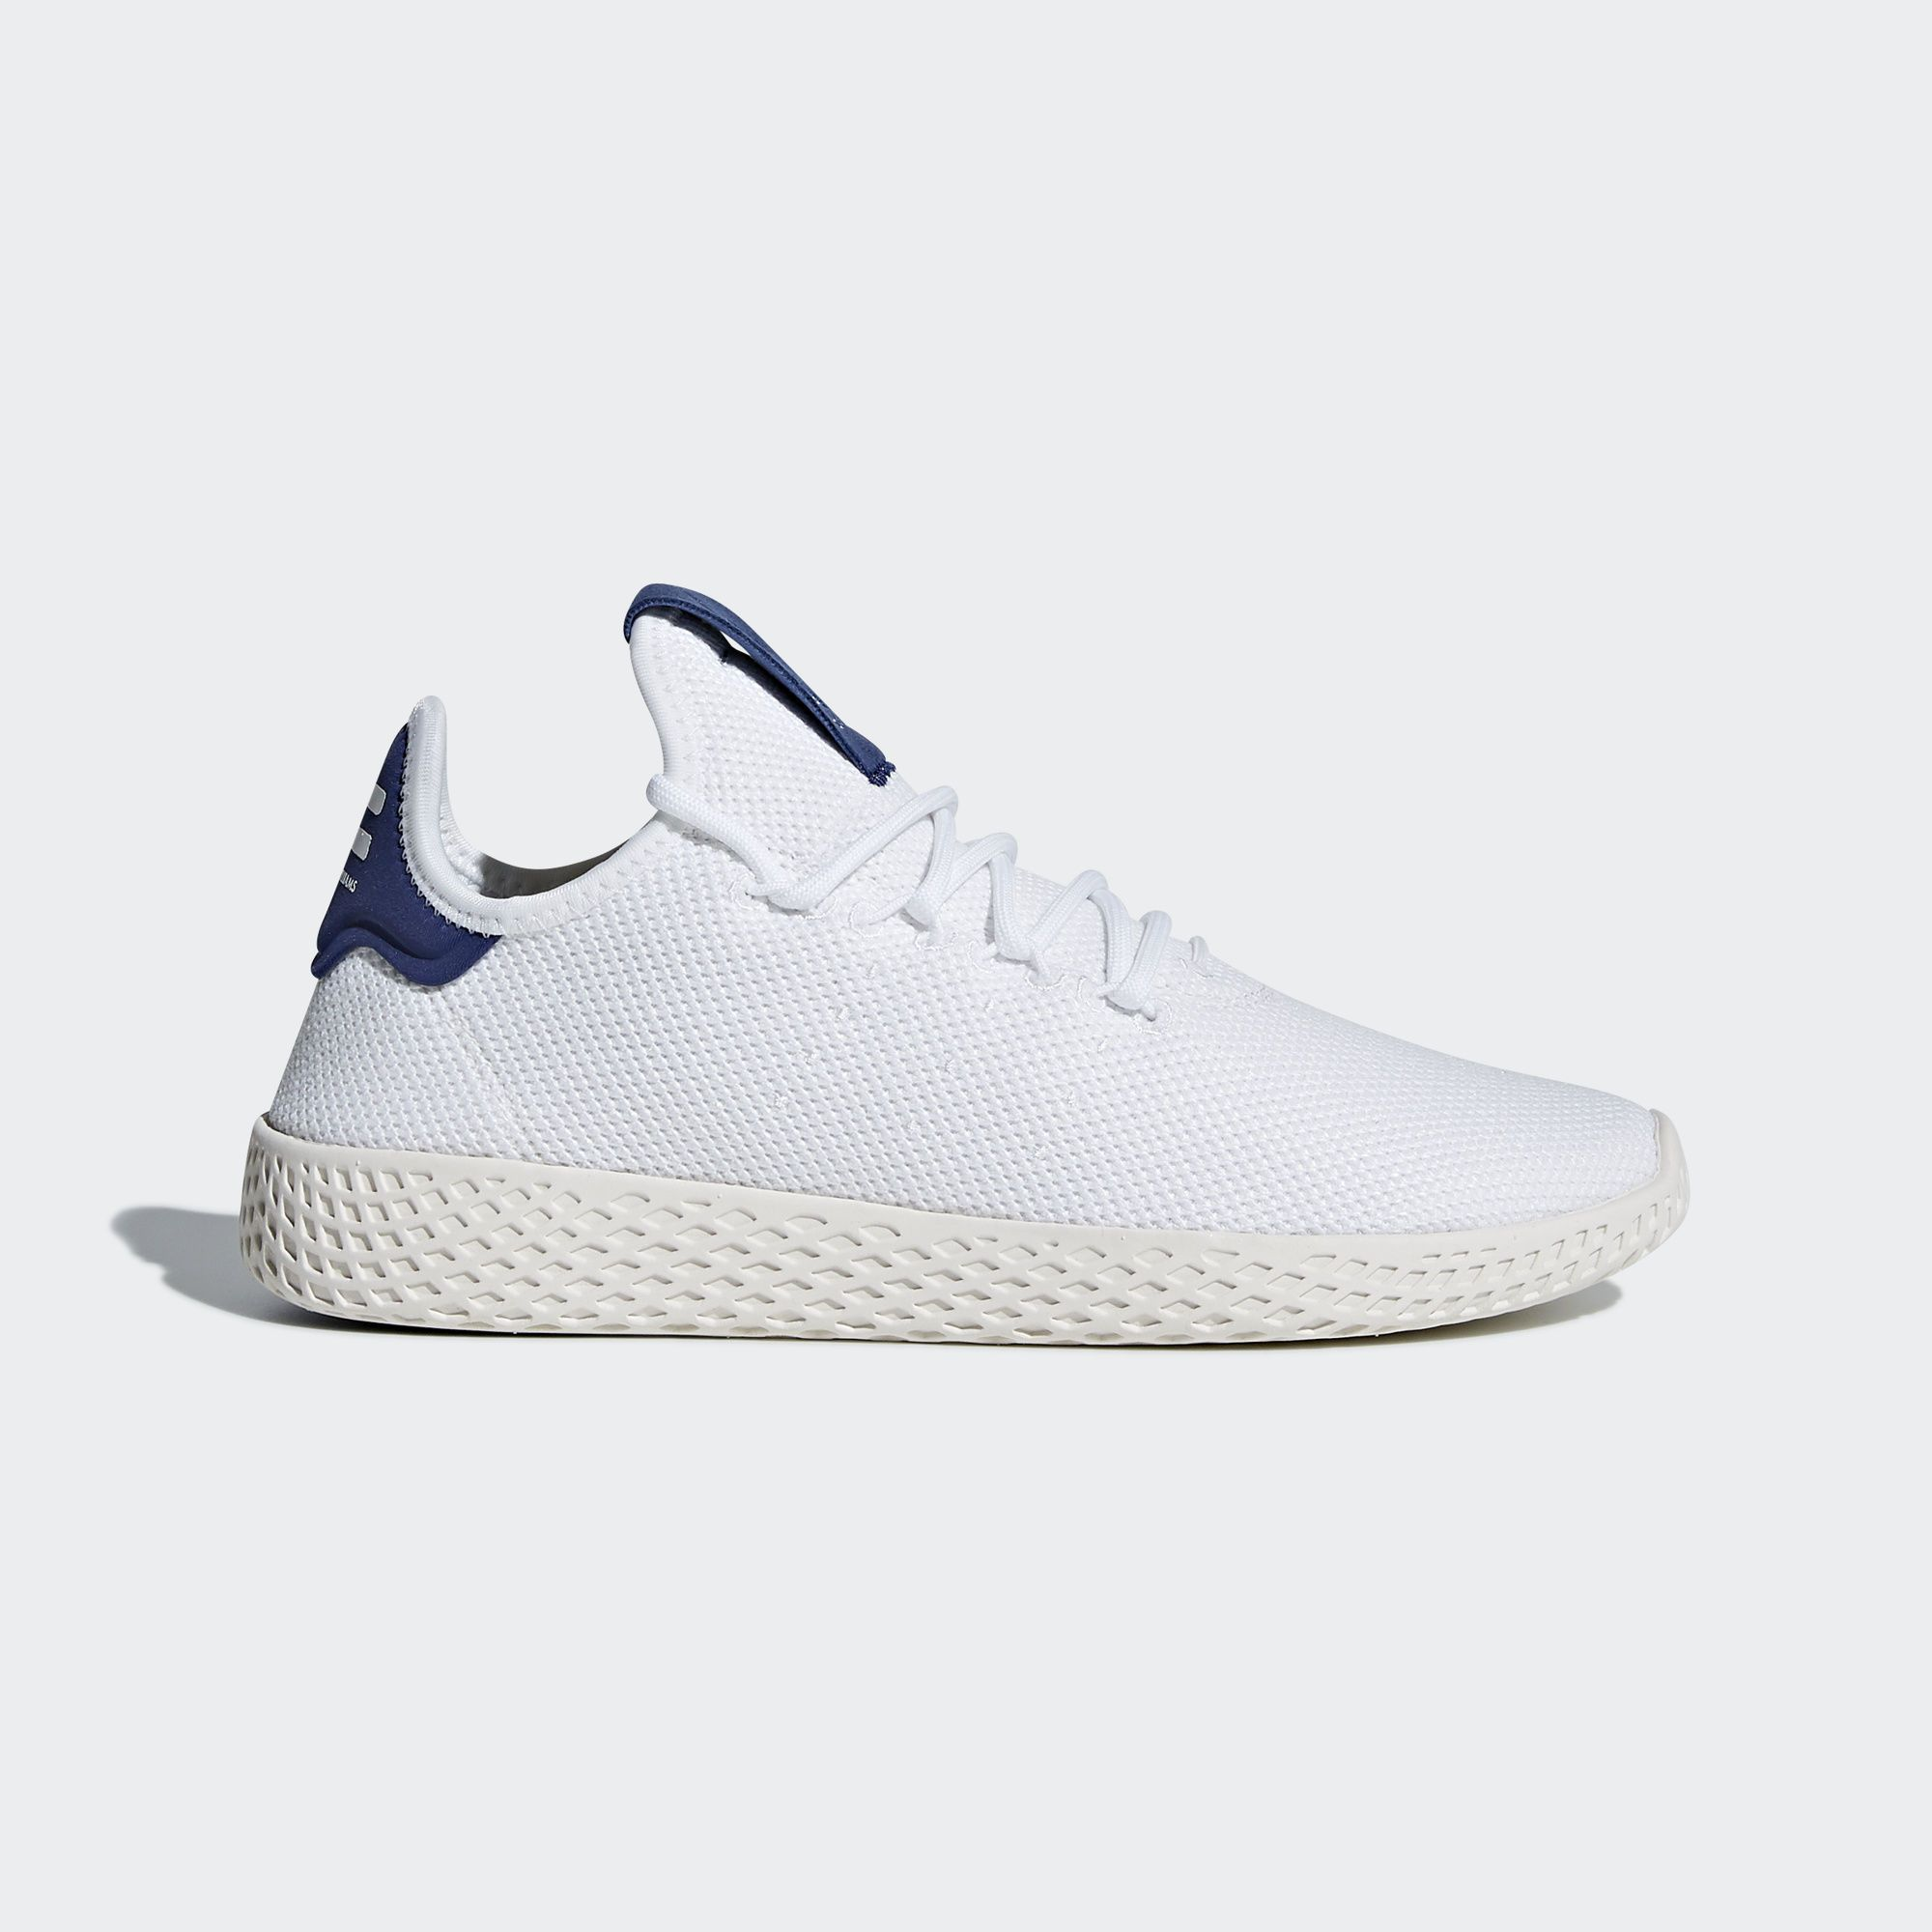 a7c21164b Shop the Pharrell Williams Tennis Hu Shoes - White at adidas.com us! See  all the styles and colors of Pharrell Williams Tennis Hu Shoes - White at  the ...